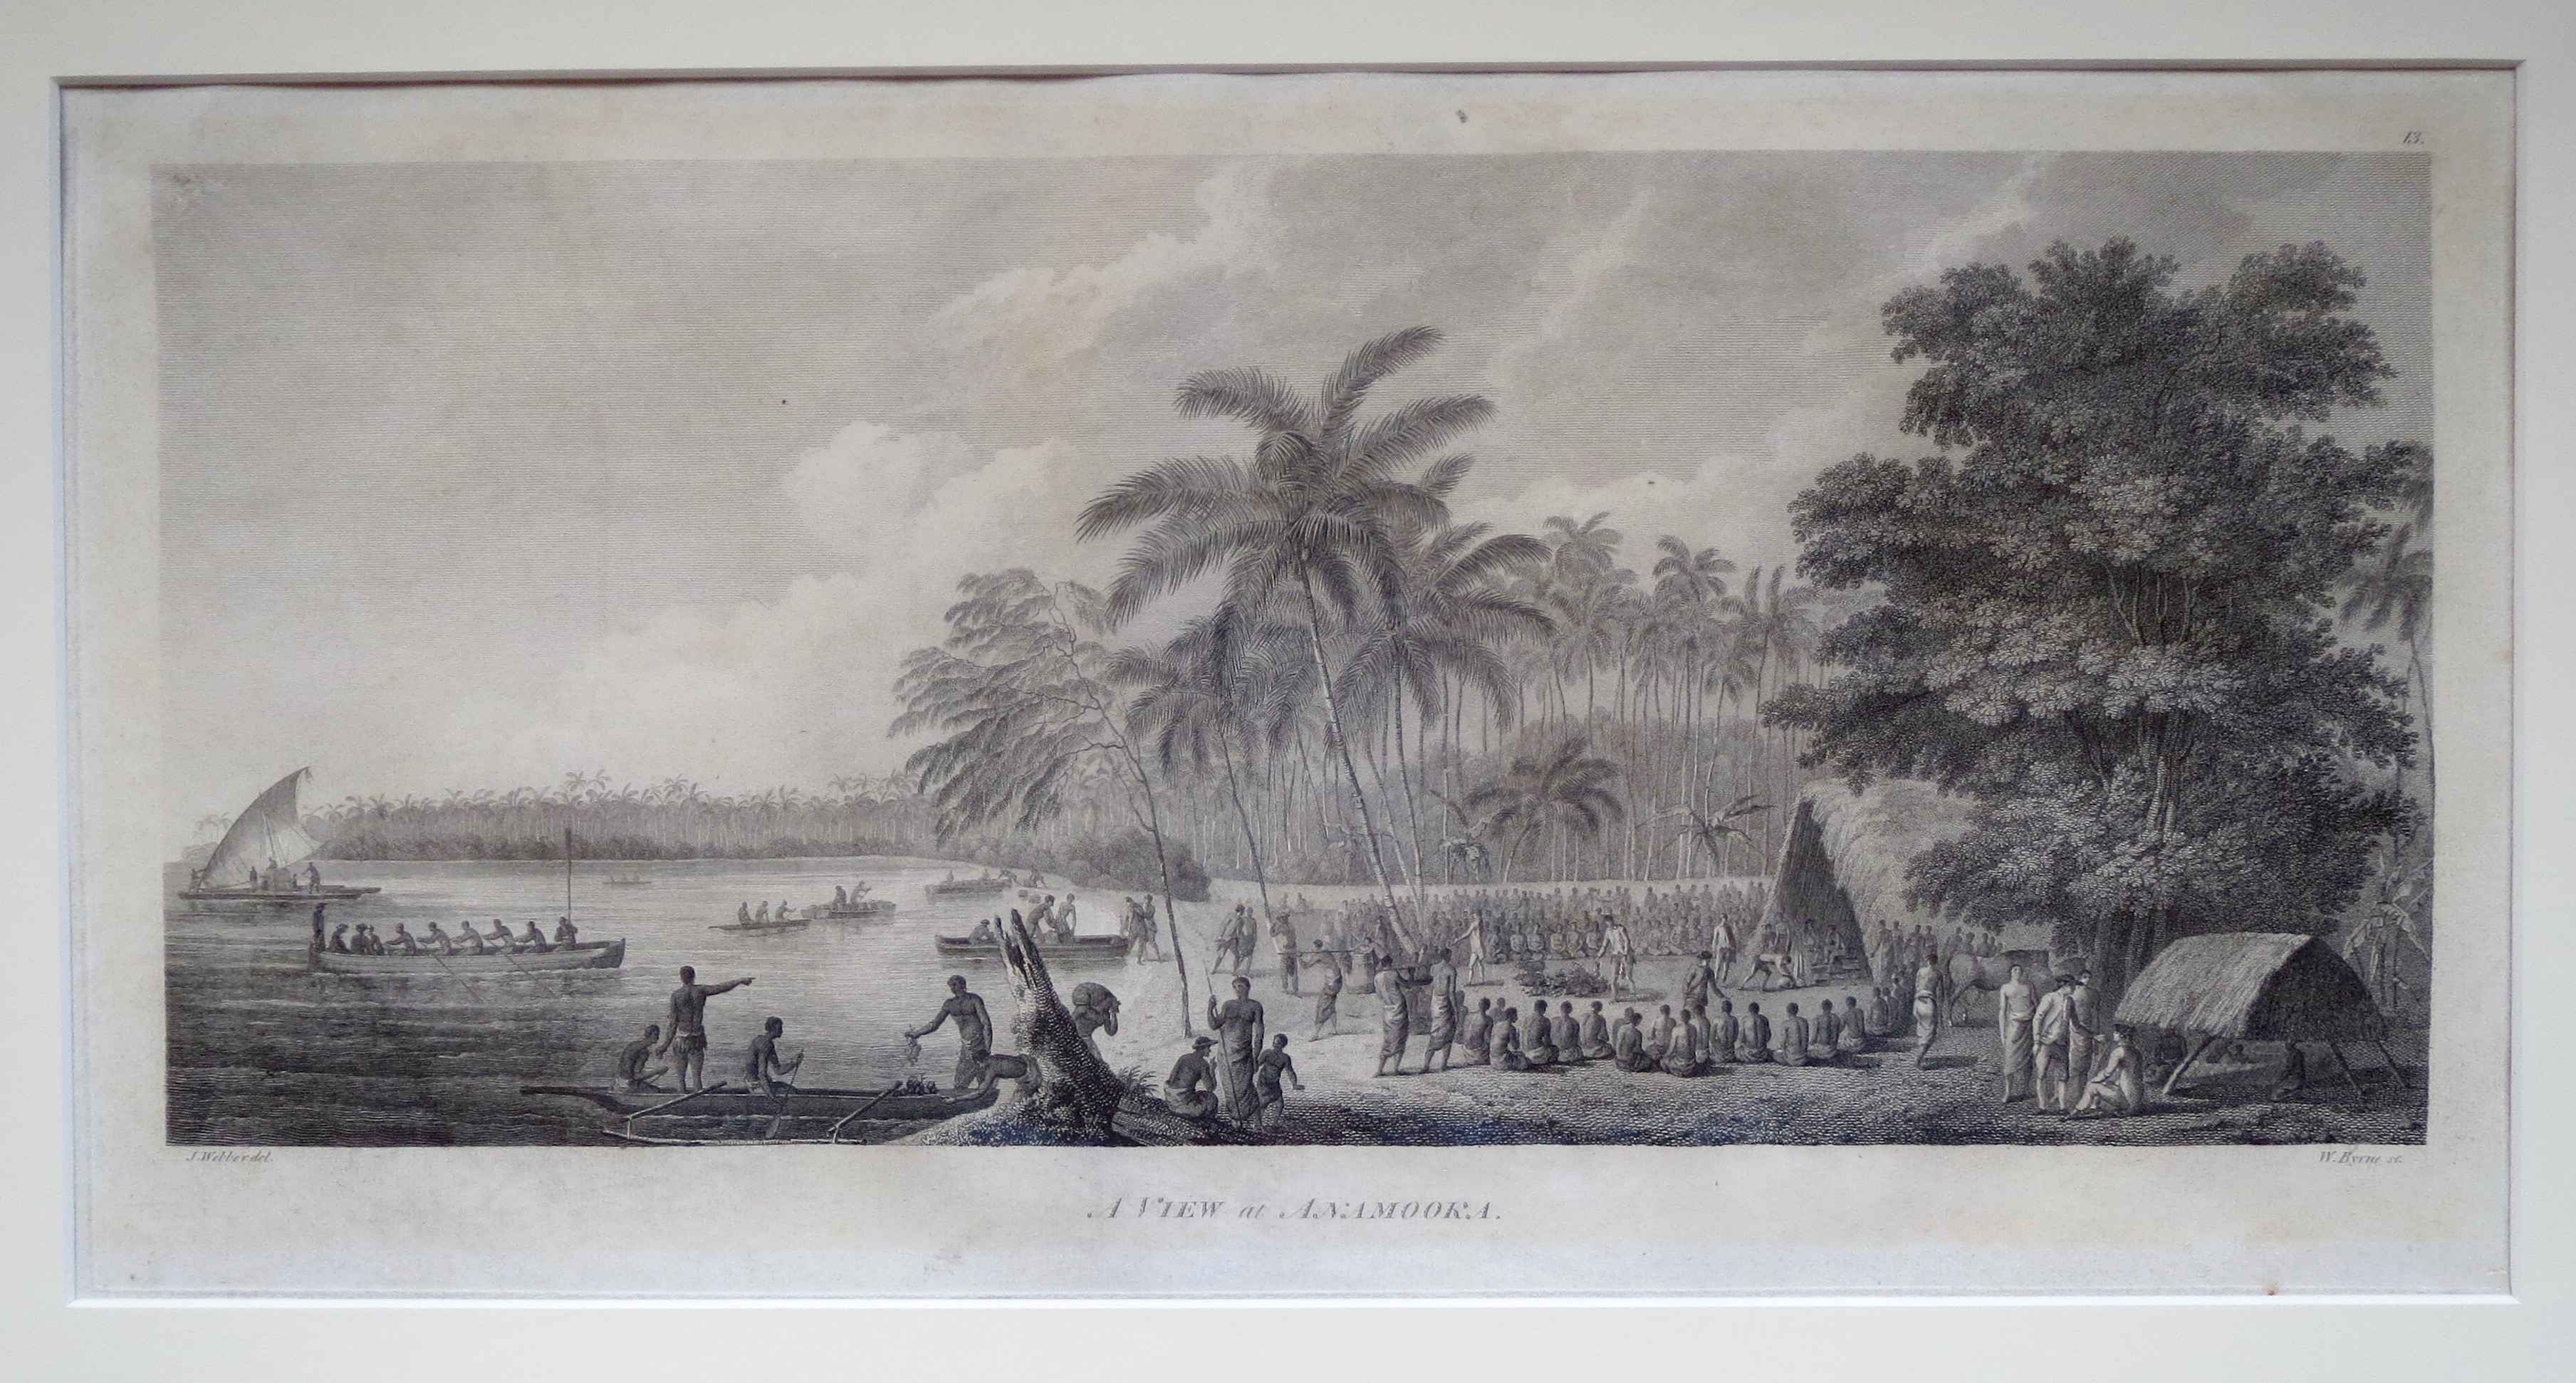 A View of Anamooka by  John Webber (1752-1793) - Masterpiece Online